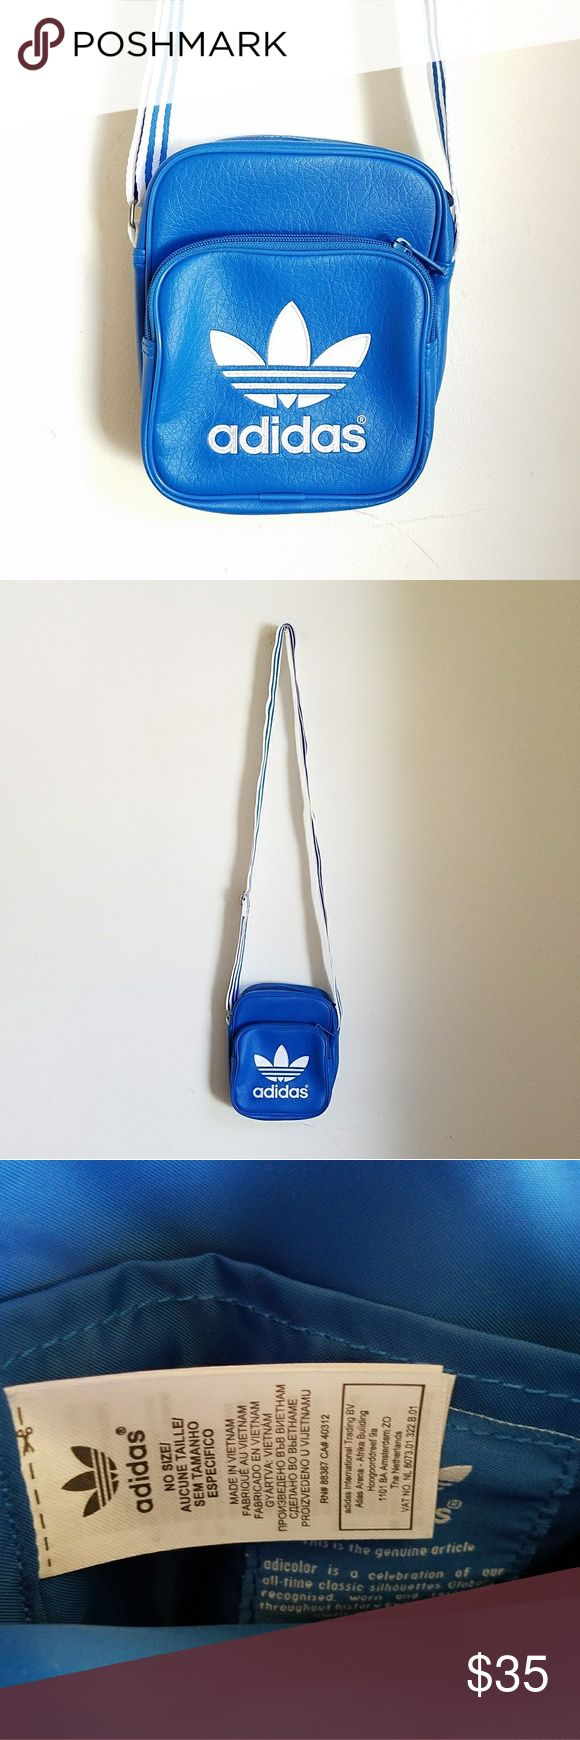 """Adidas Adicolor retro hip hop x-body bag Supah cool Adidas Adicolor logo faux leather crosboddy bag. Blue / white combo.   This is such a trooper! Perfect size to carry all your essentials, looking cute AF ♡   Measurements:  6 x 7 x 2""""   I wore it once or twice. (I am a backpack person) Like new condition.    ● Cool discounts on bundles    Adidas adicolor messenger x-body crossbody purse bag pastel blue Lolita kawaii hip hop sporty spice grunge street urban wear free alternative apparel…"""